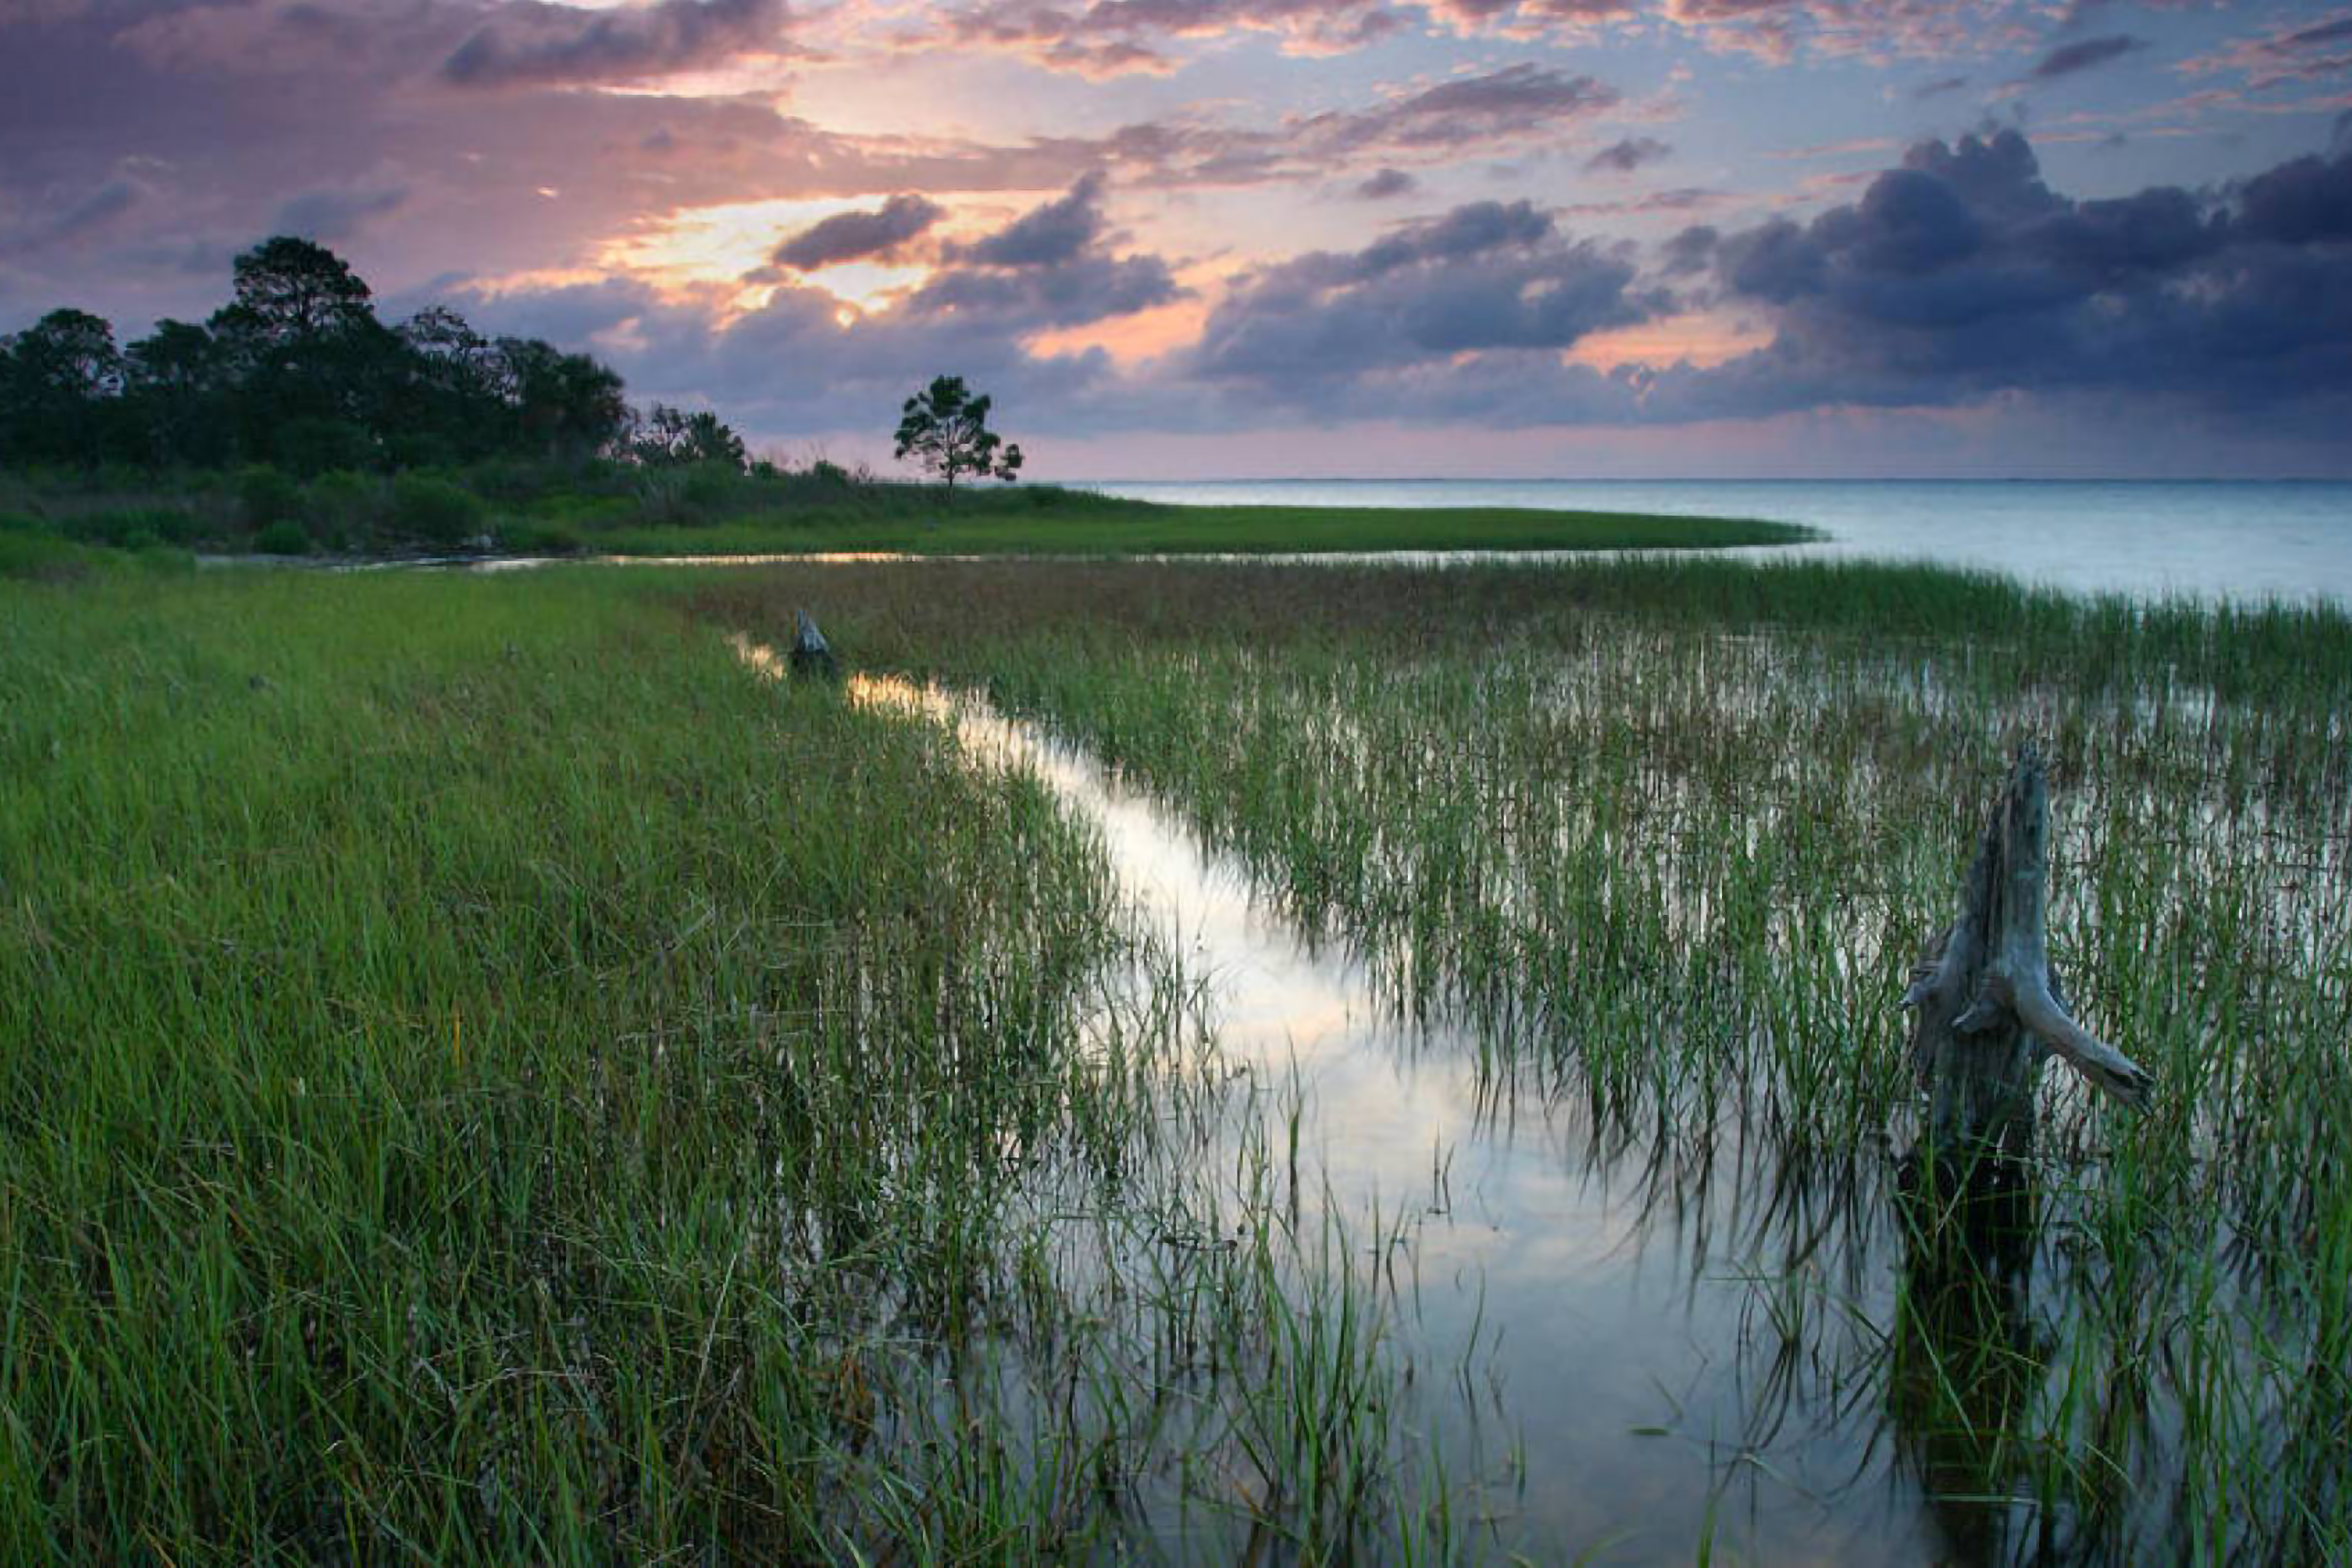 Coastal marsh habitat landscape in Florida, with marsh, trees and a sunset.